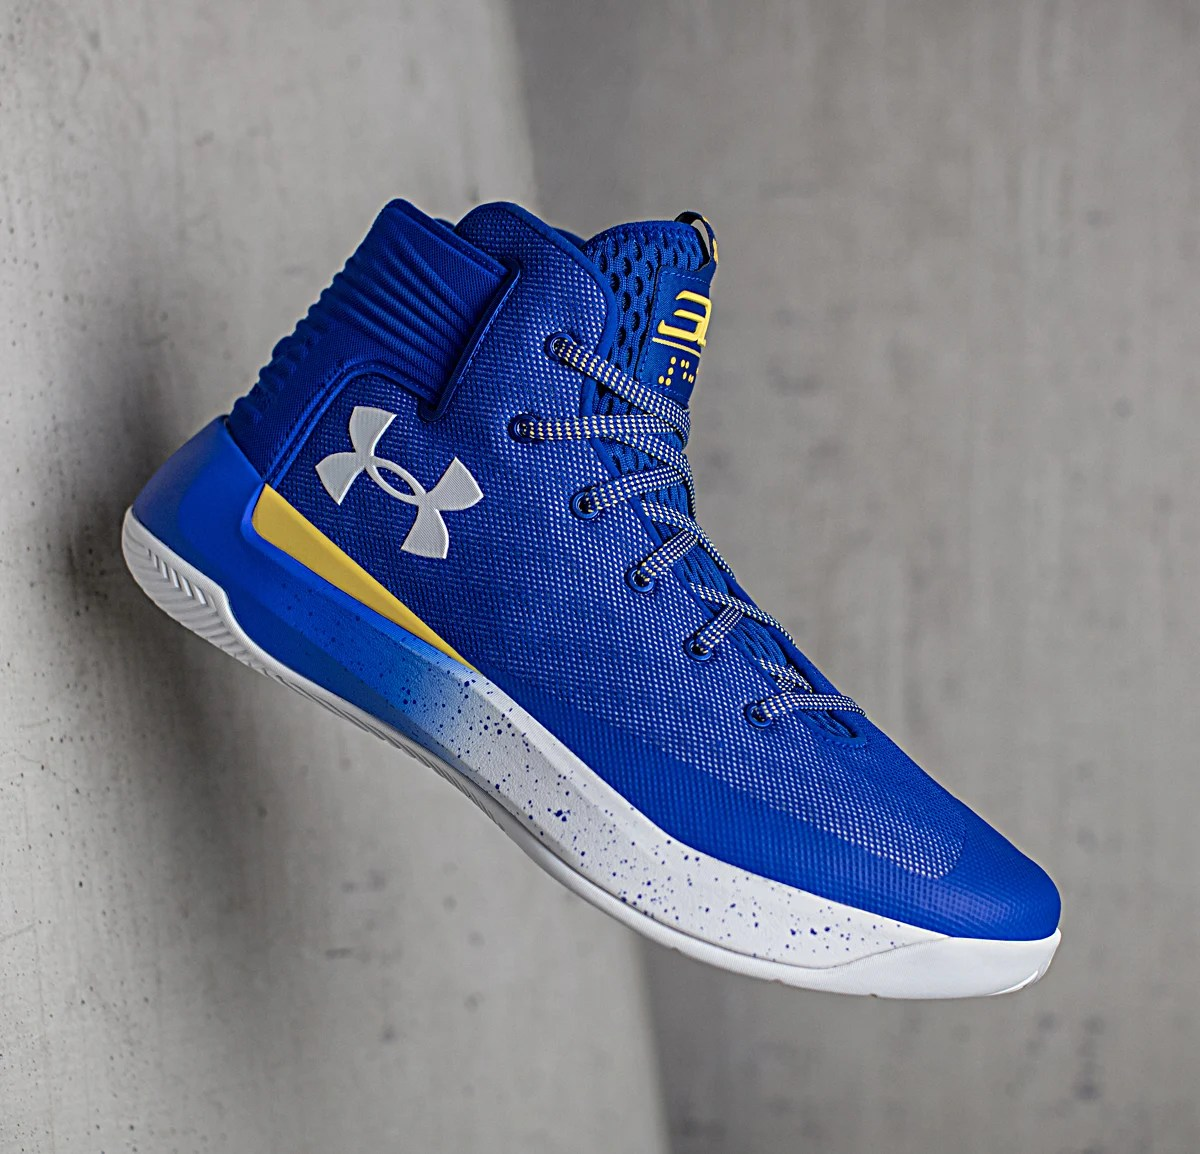 45e239bedc Just The Facts // Inside Stephen Curry's Under Armour Curry 3Zer0 Playoff  Shoe